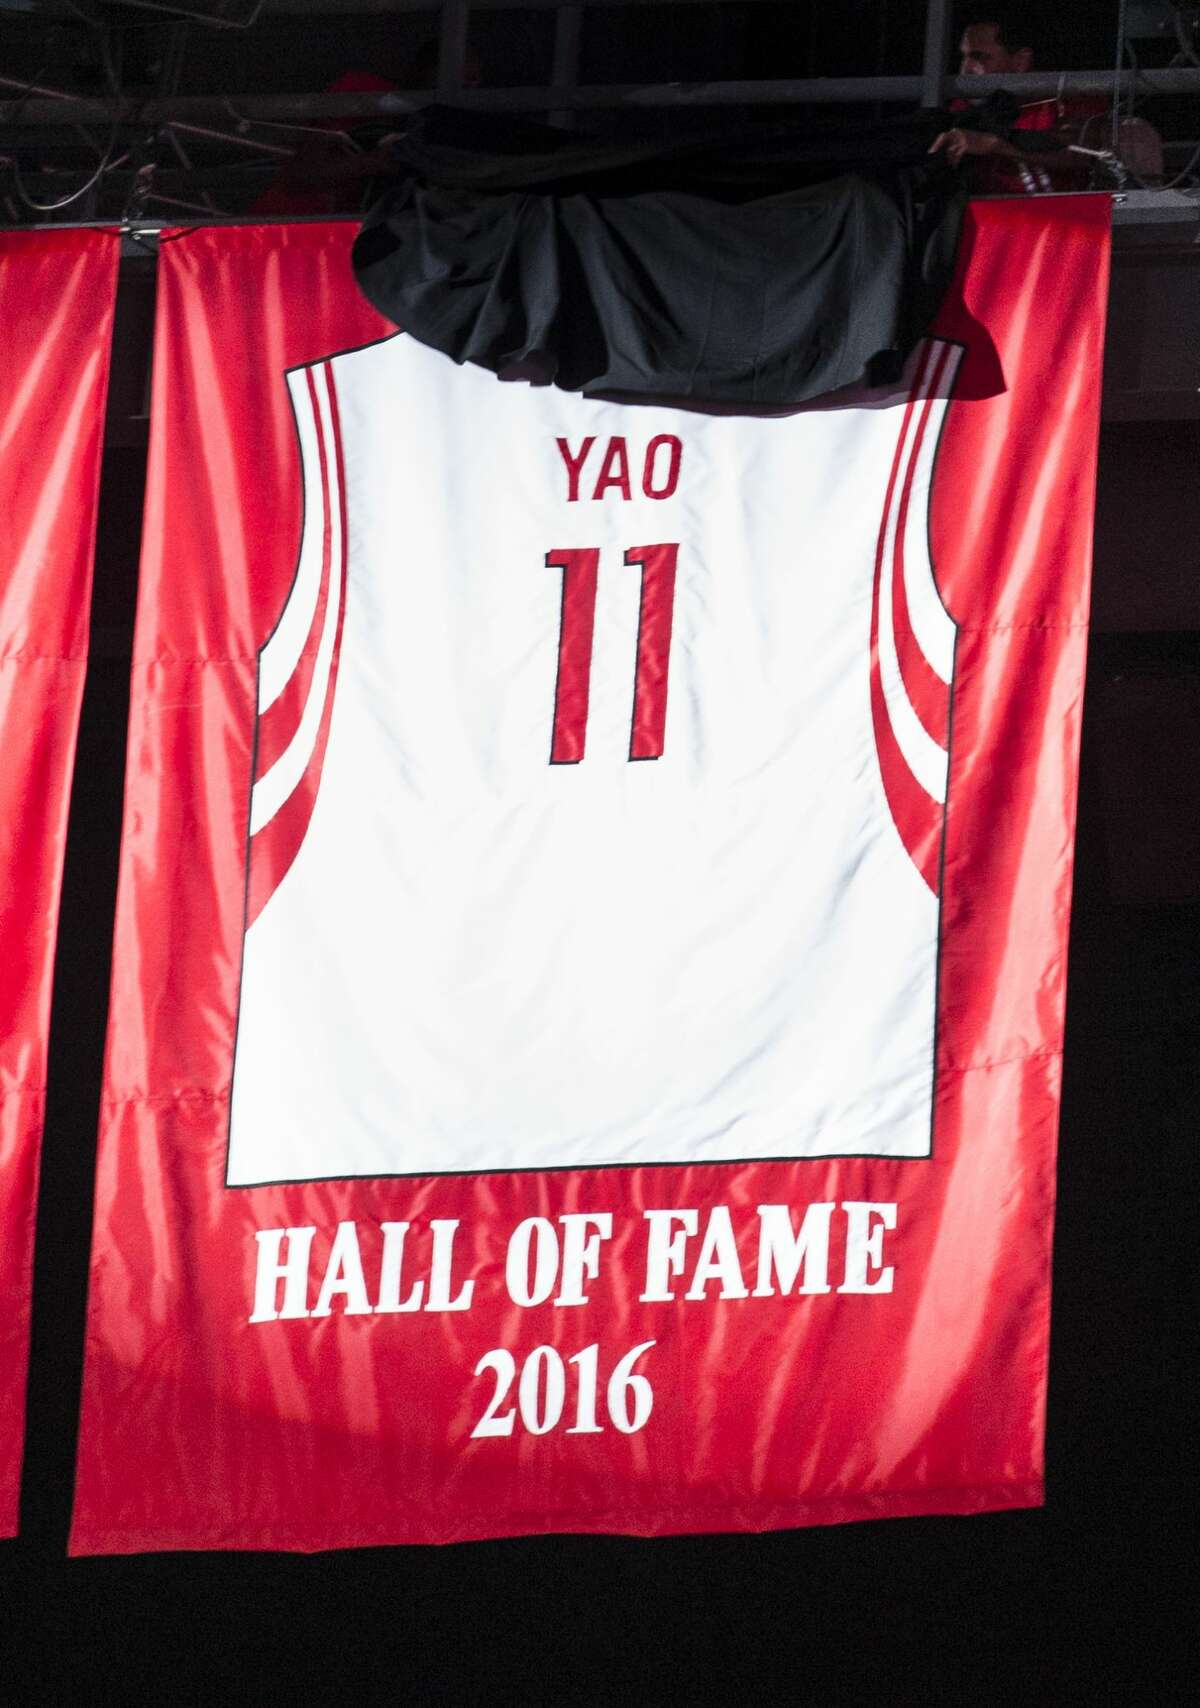 Former Houston Rockets and Hall of Fame center Yao Ming's number 11 jersey is retired at Toyota Center on Friday, Feb. 3, 2017, in Houston. ( Brett Coomer / Houston Chronicle )